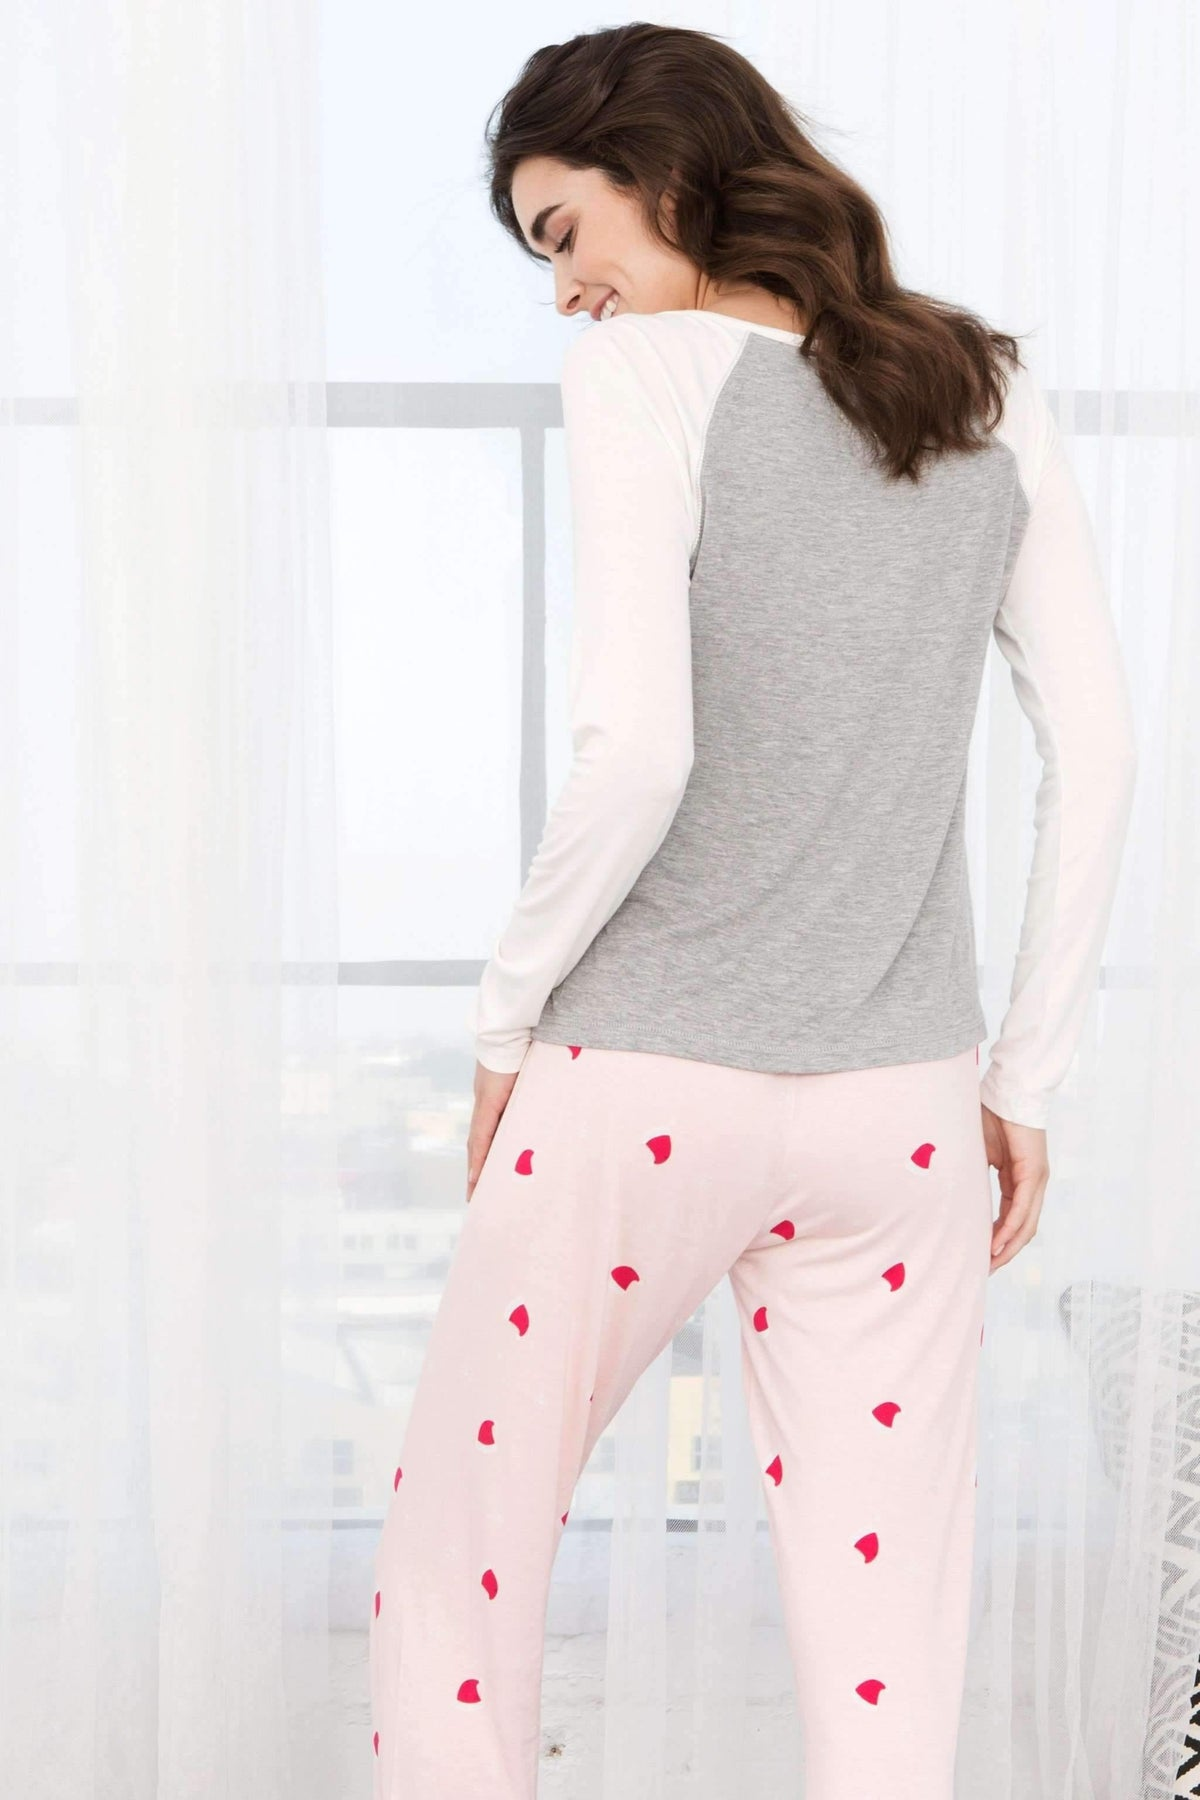 ef5d23c783af Winter Breaker PJ Set-Sleepshirt-Honeydew Intimates-Honeydew Intimates